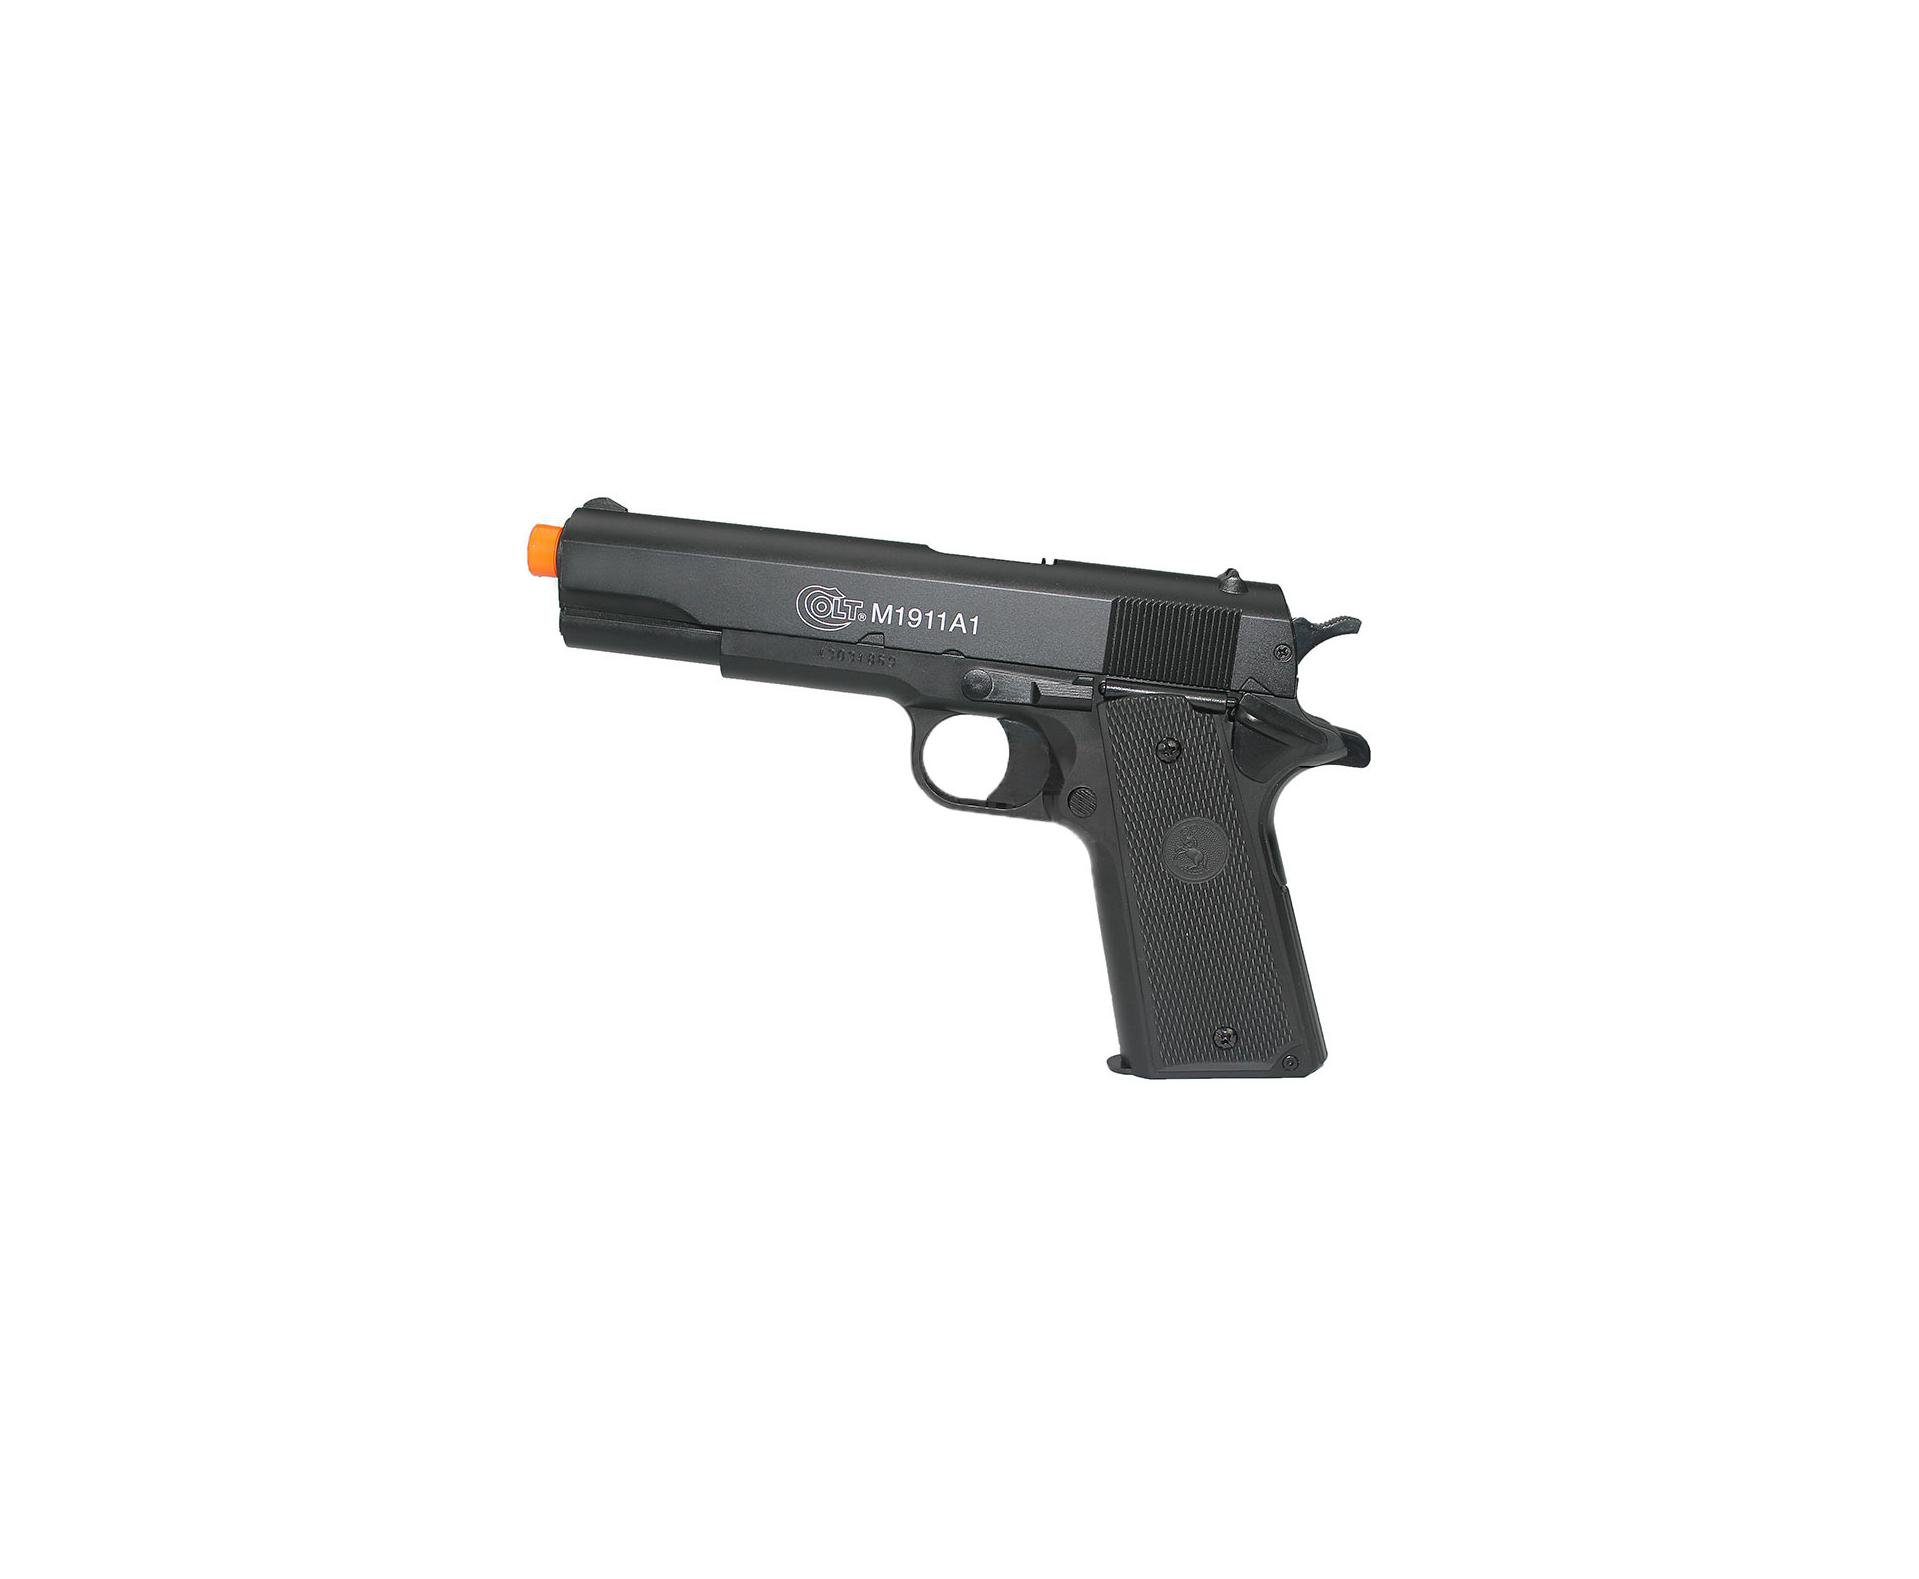 Pistola De Airsoft Colt 1911 A1 Semi Metal Calibre 6,0 Mm - Colt Cybergun